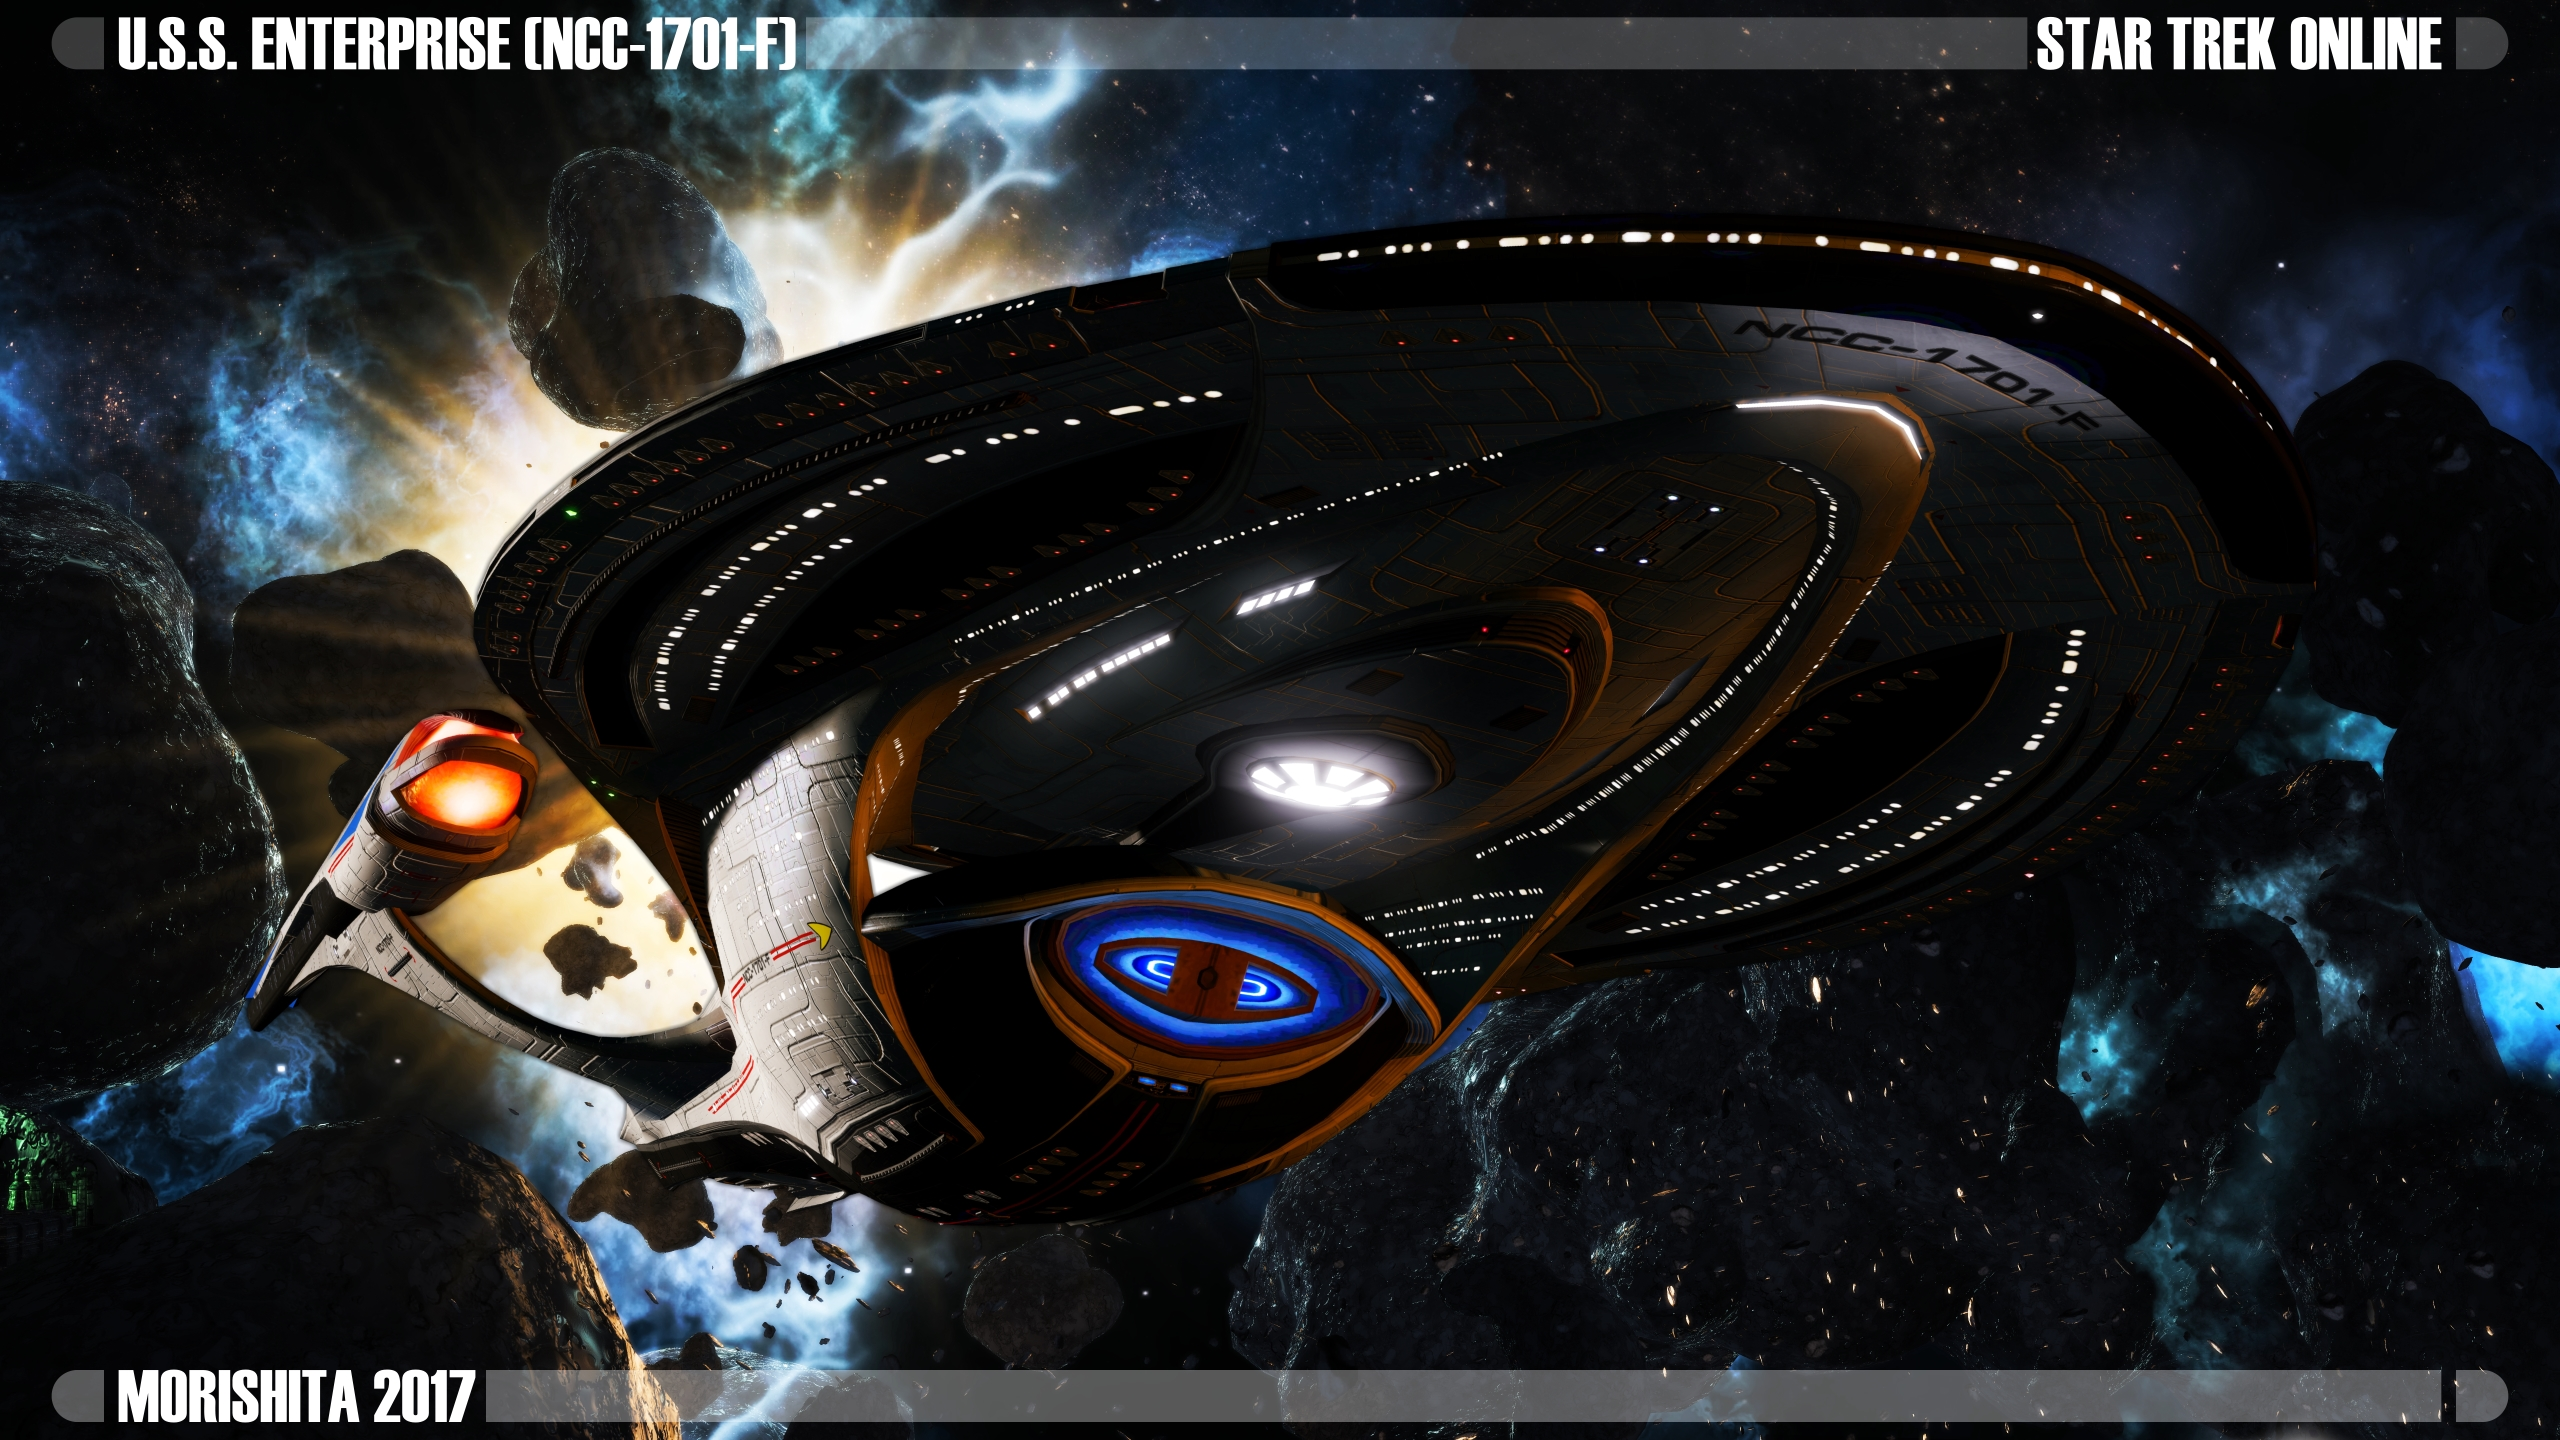 U.S.S. Enterprise (NCC-1701-F)